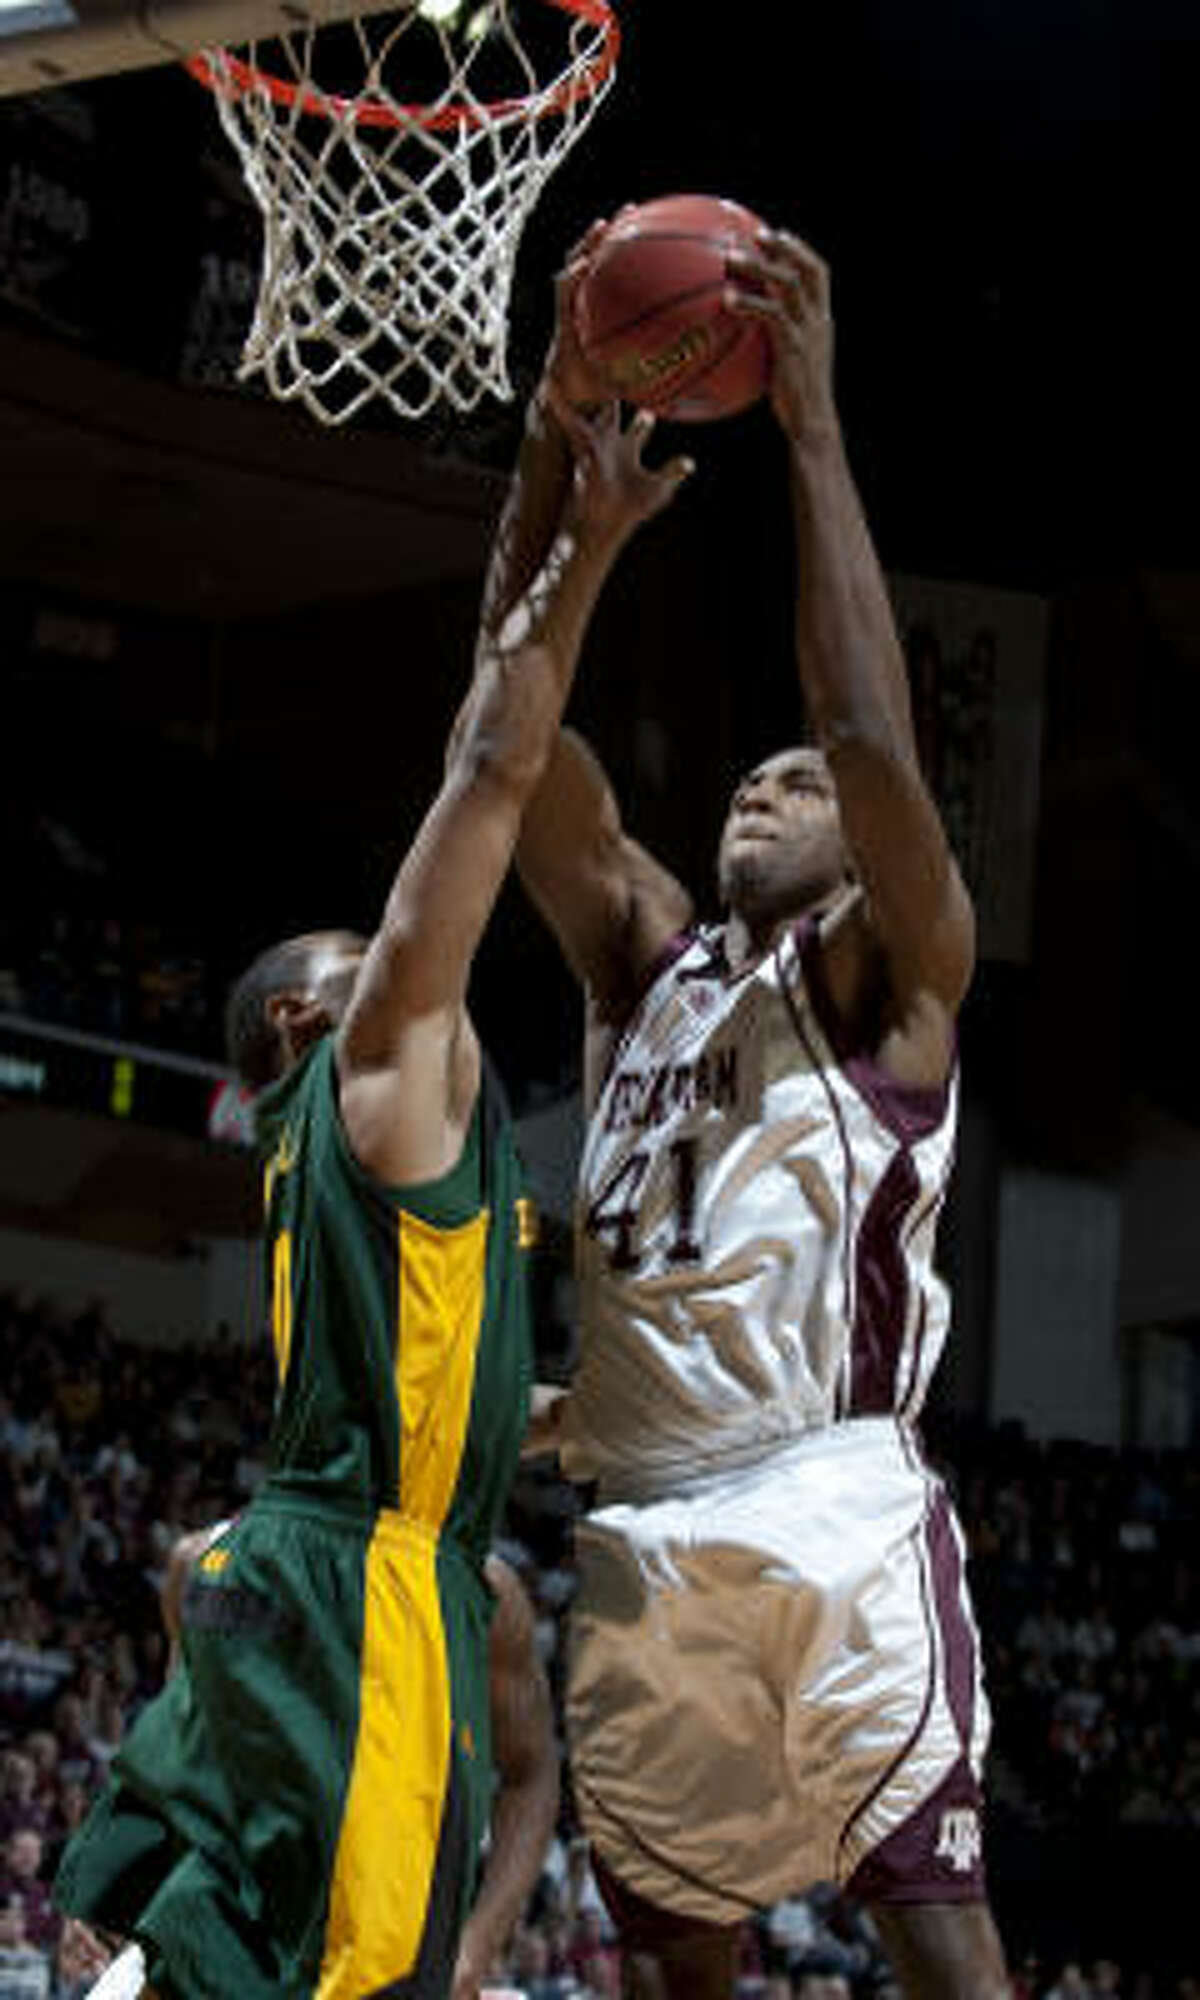 Texas A&M's Chinemelu Elonu, a former Elsik standout, is averaging 11 points and a team-high 8 rebounds per game this season.